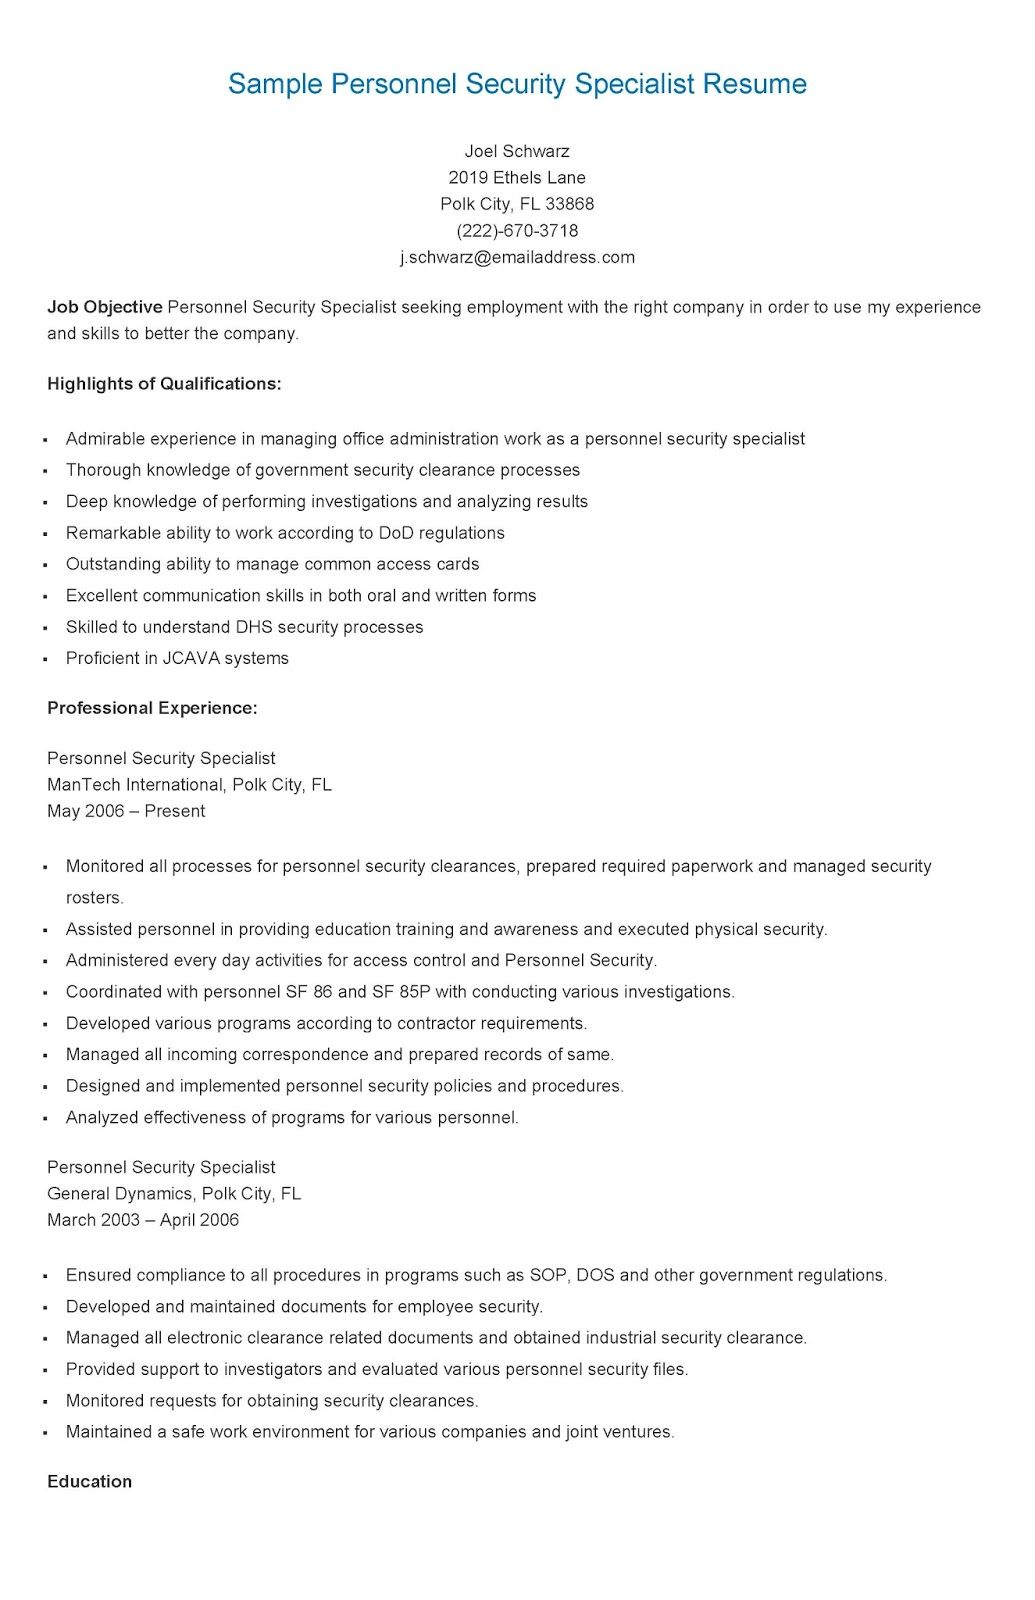 Sample Personnel Security Specialist Resume | resame | Pinterest